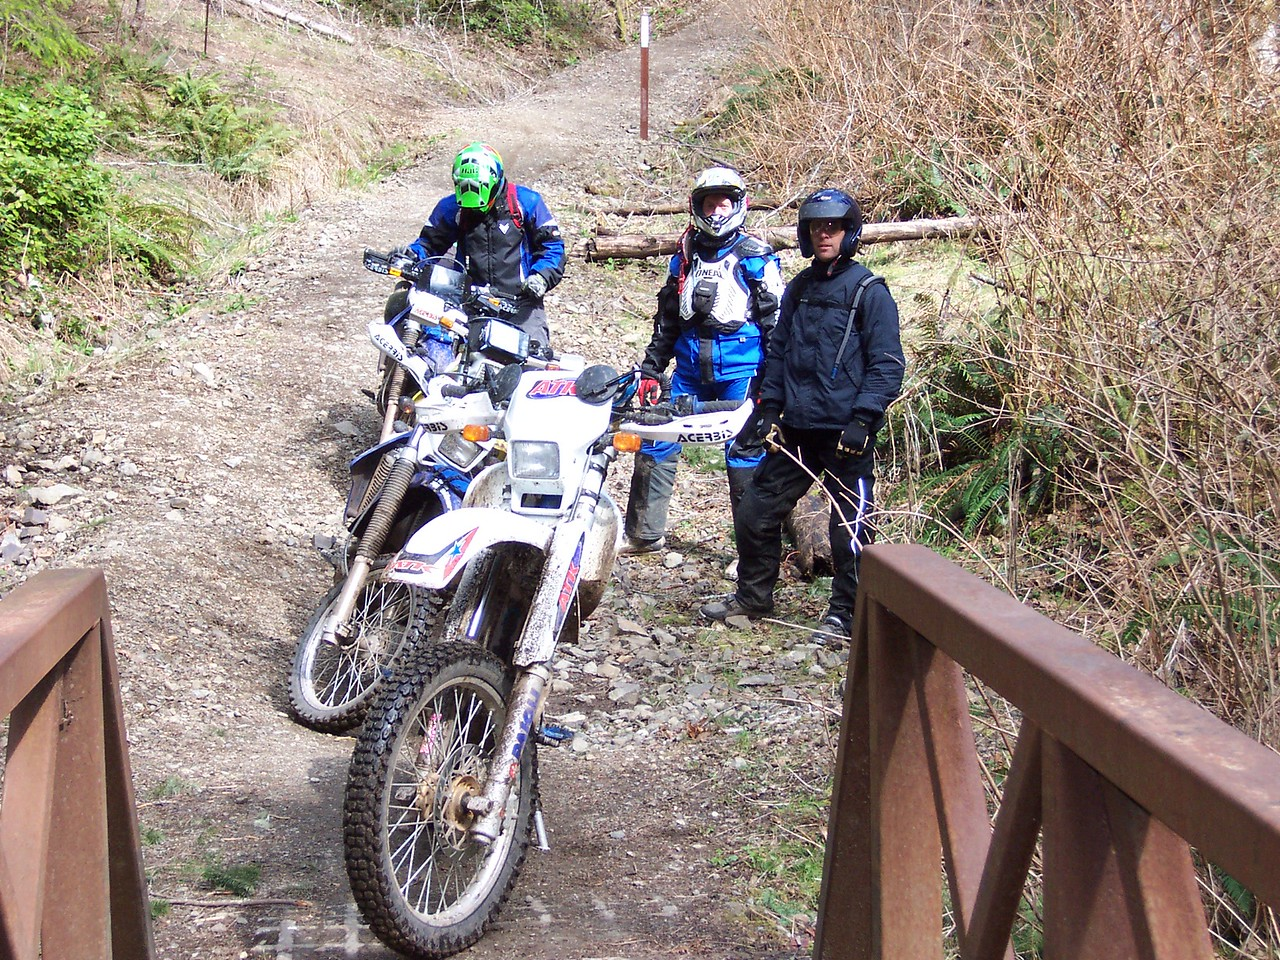 Bridge near the start of the Gold Creek trail. After here the fun begins. Randy, Andy, and Jeff.